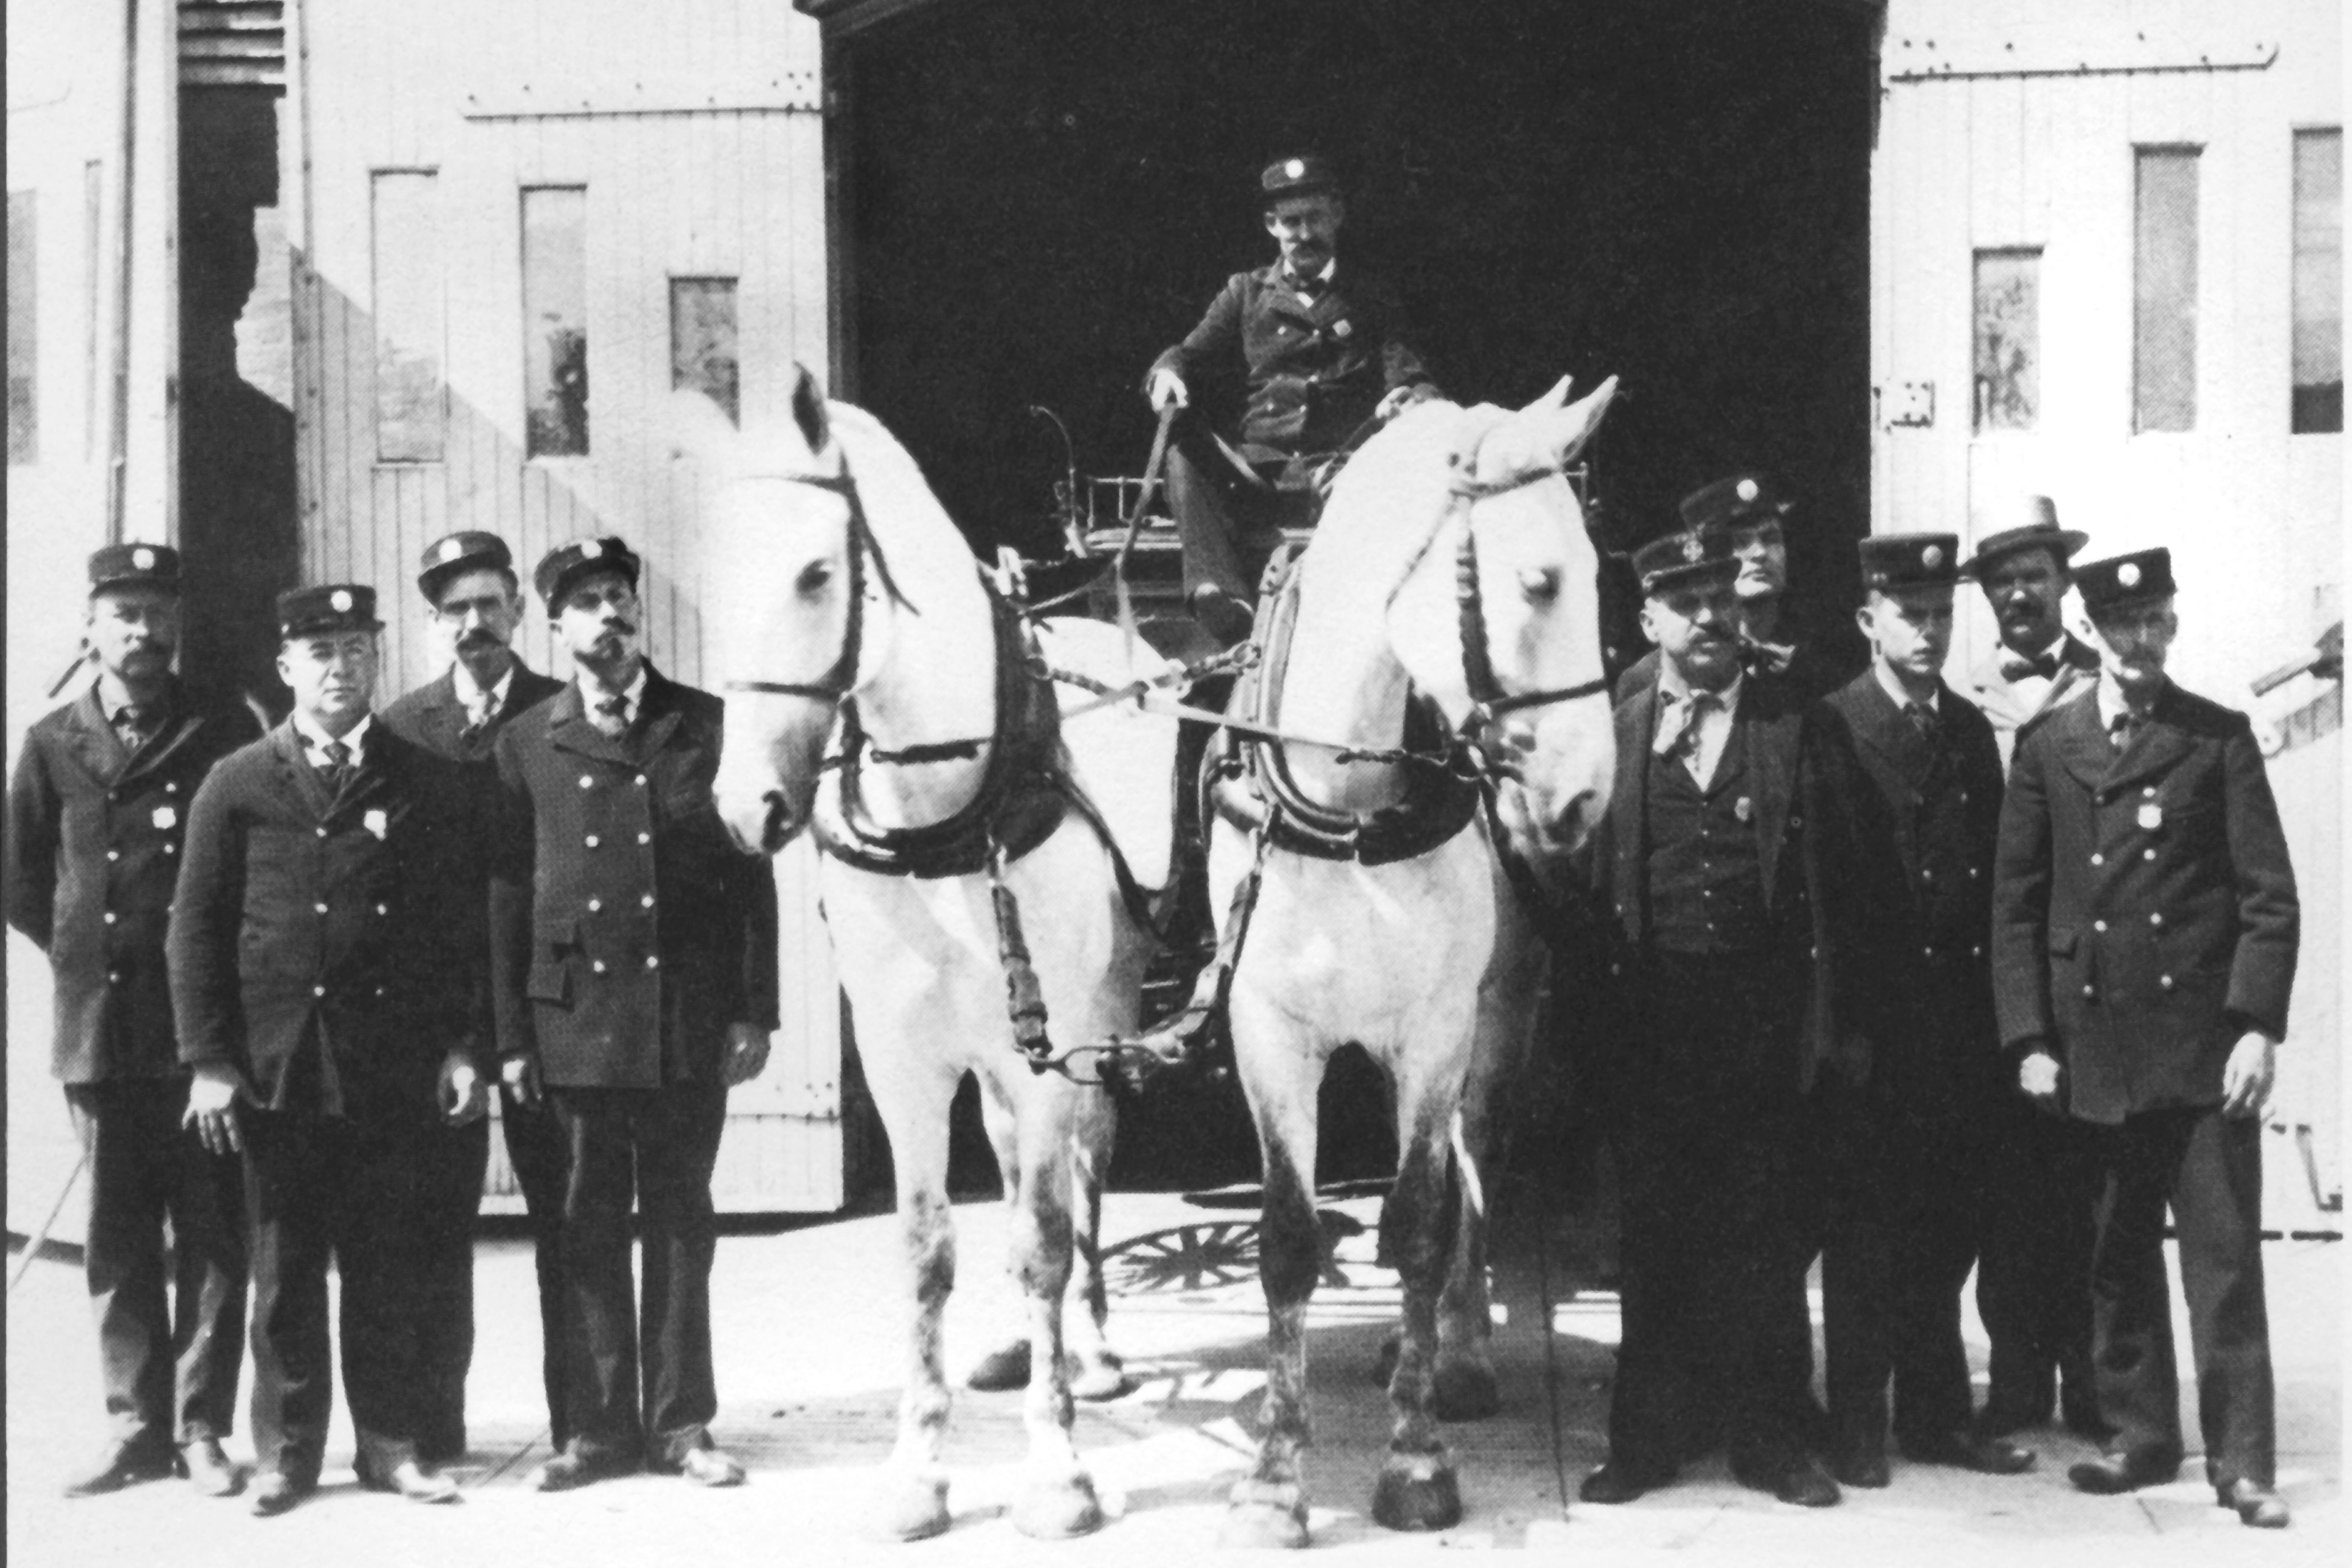 Firefighters at Firemen's Hall, East Huron Street, 1906 image